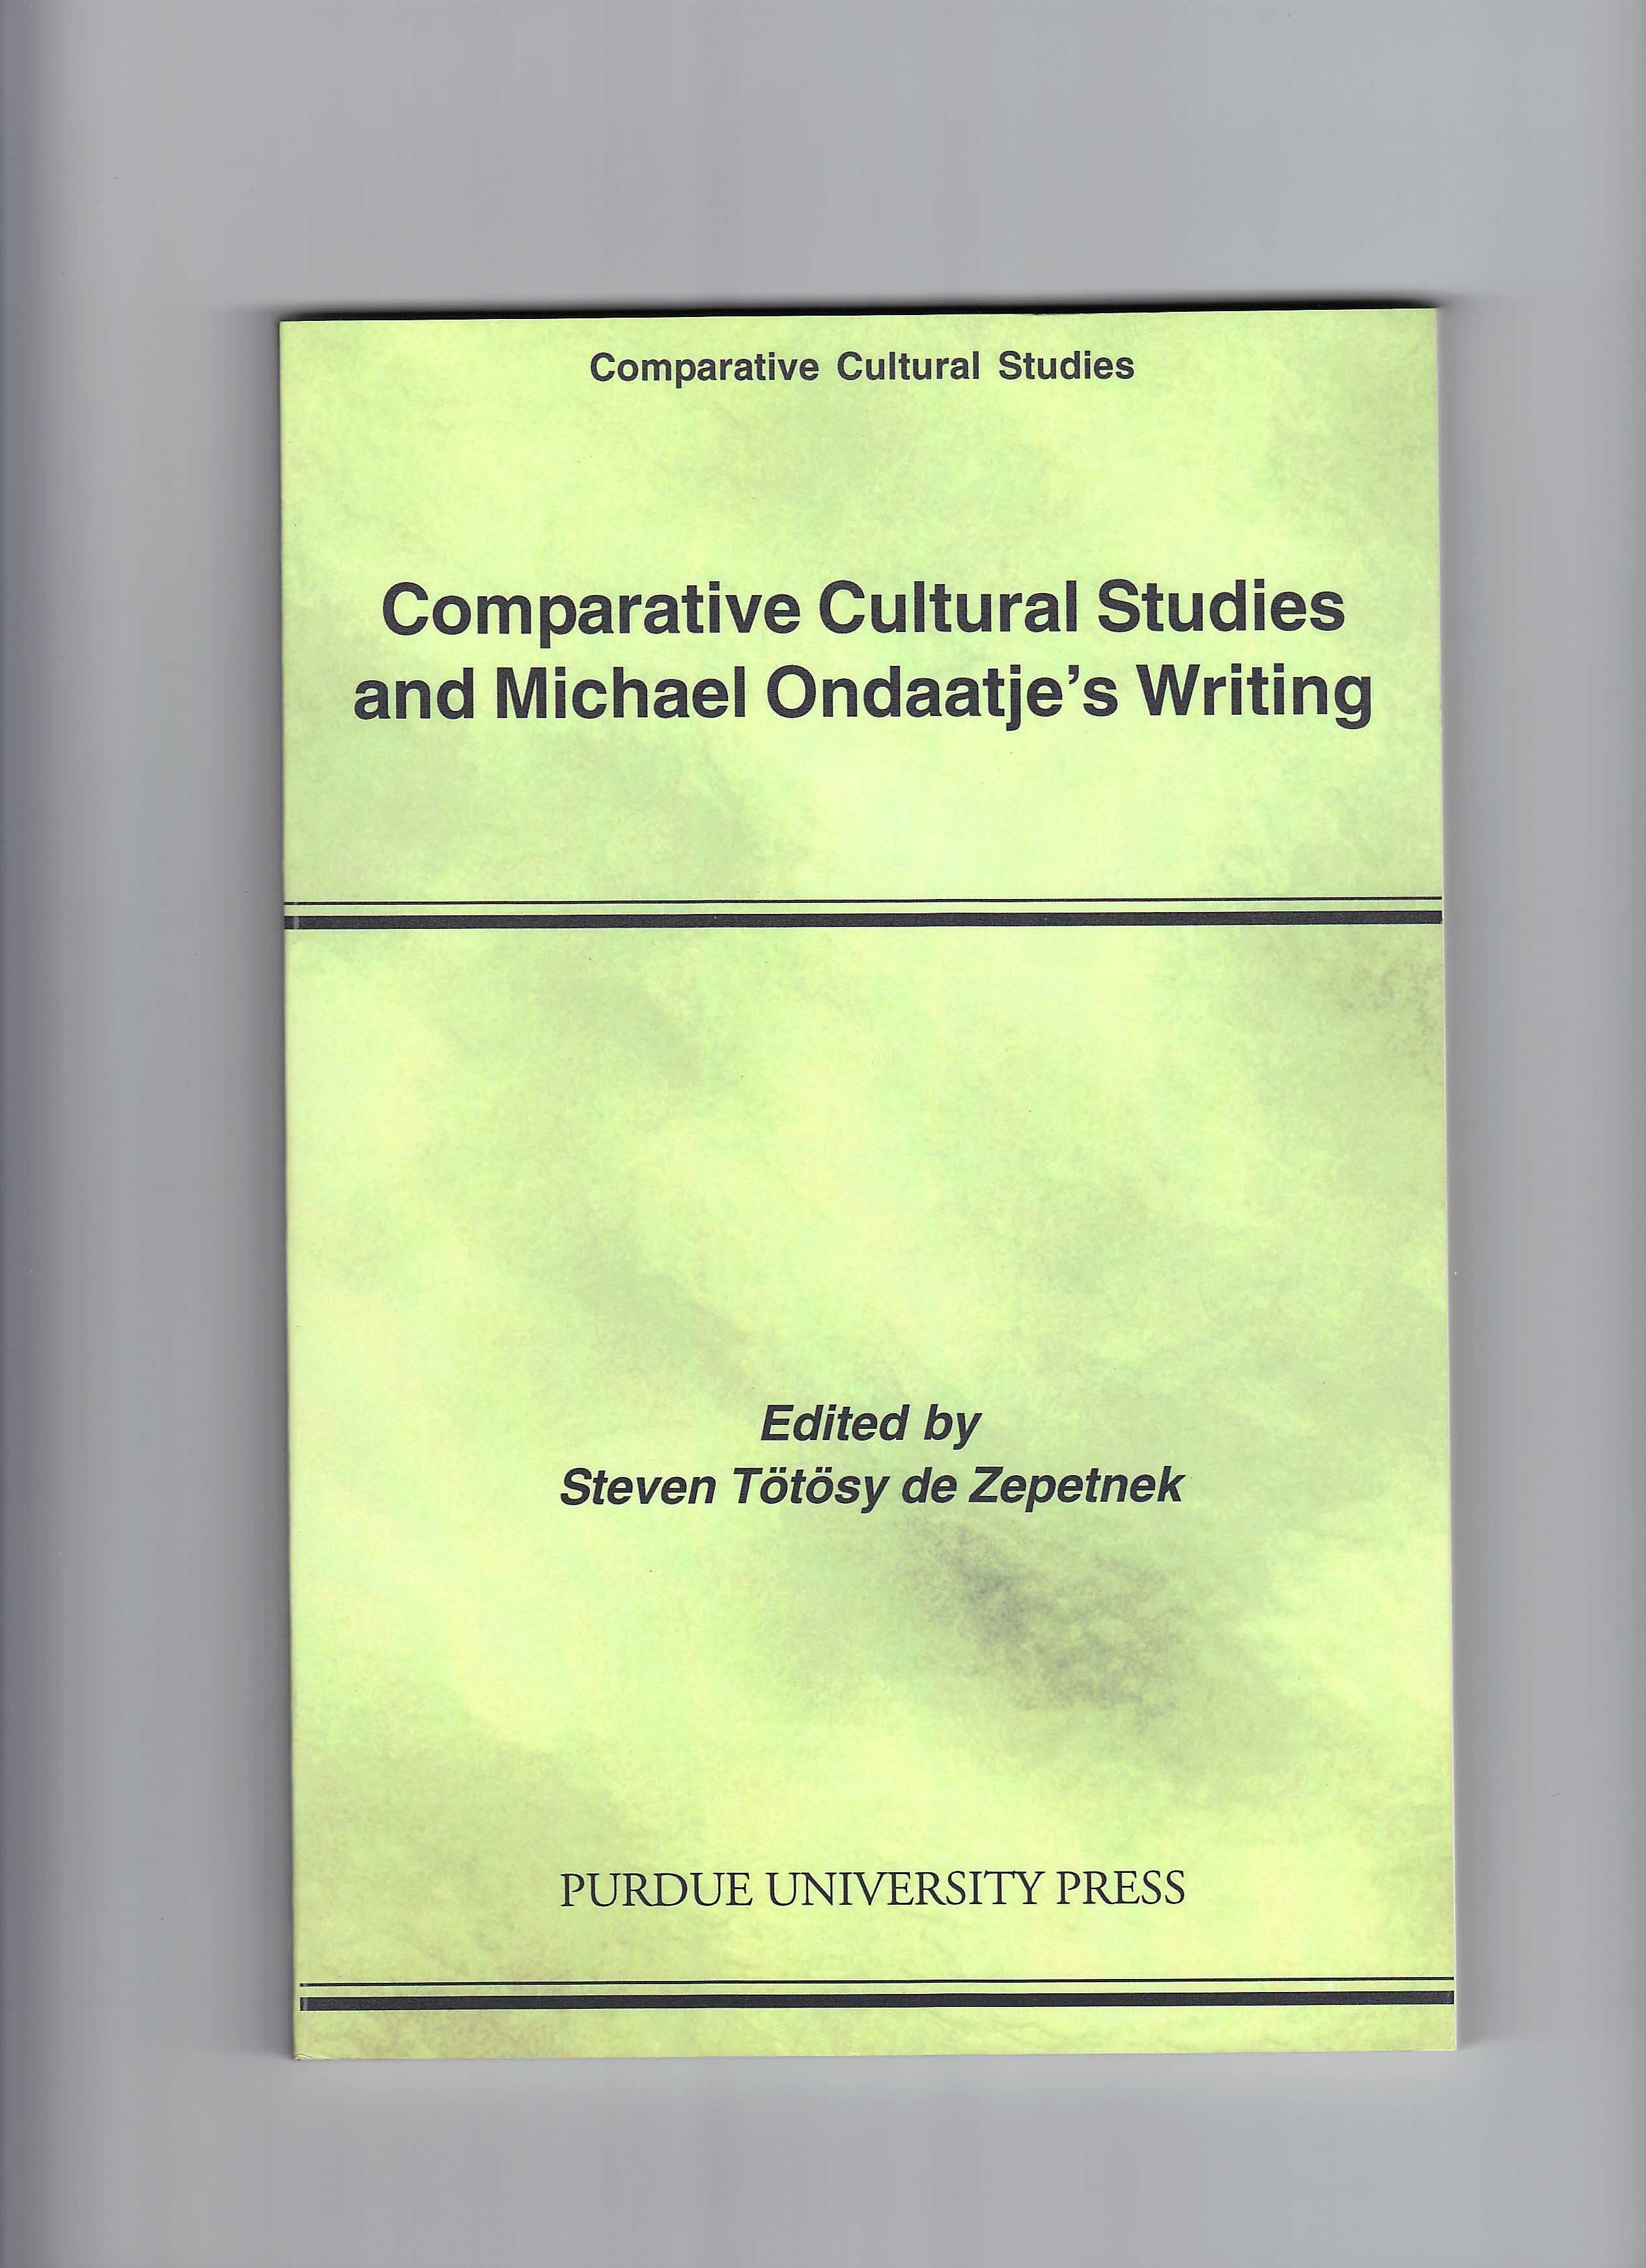 Comparative Cultural Studies and Michael Ondaatje's Writing. Ed. Steven T�t�sy de Zepetnek. West Lafayette: Purdue University Press, 2005.